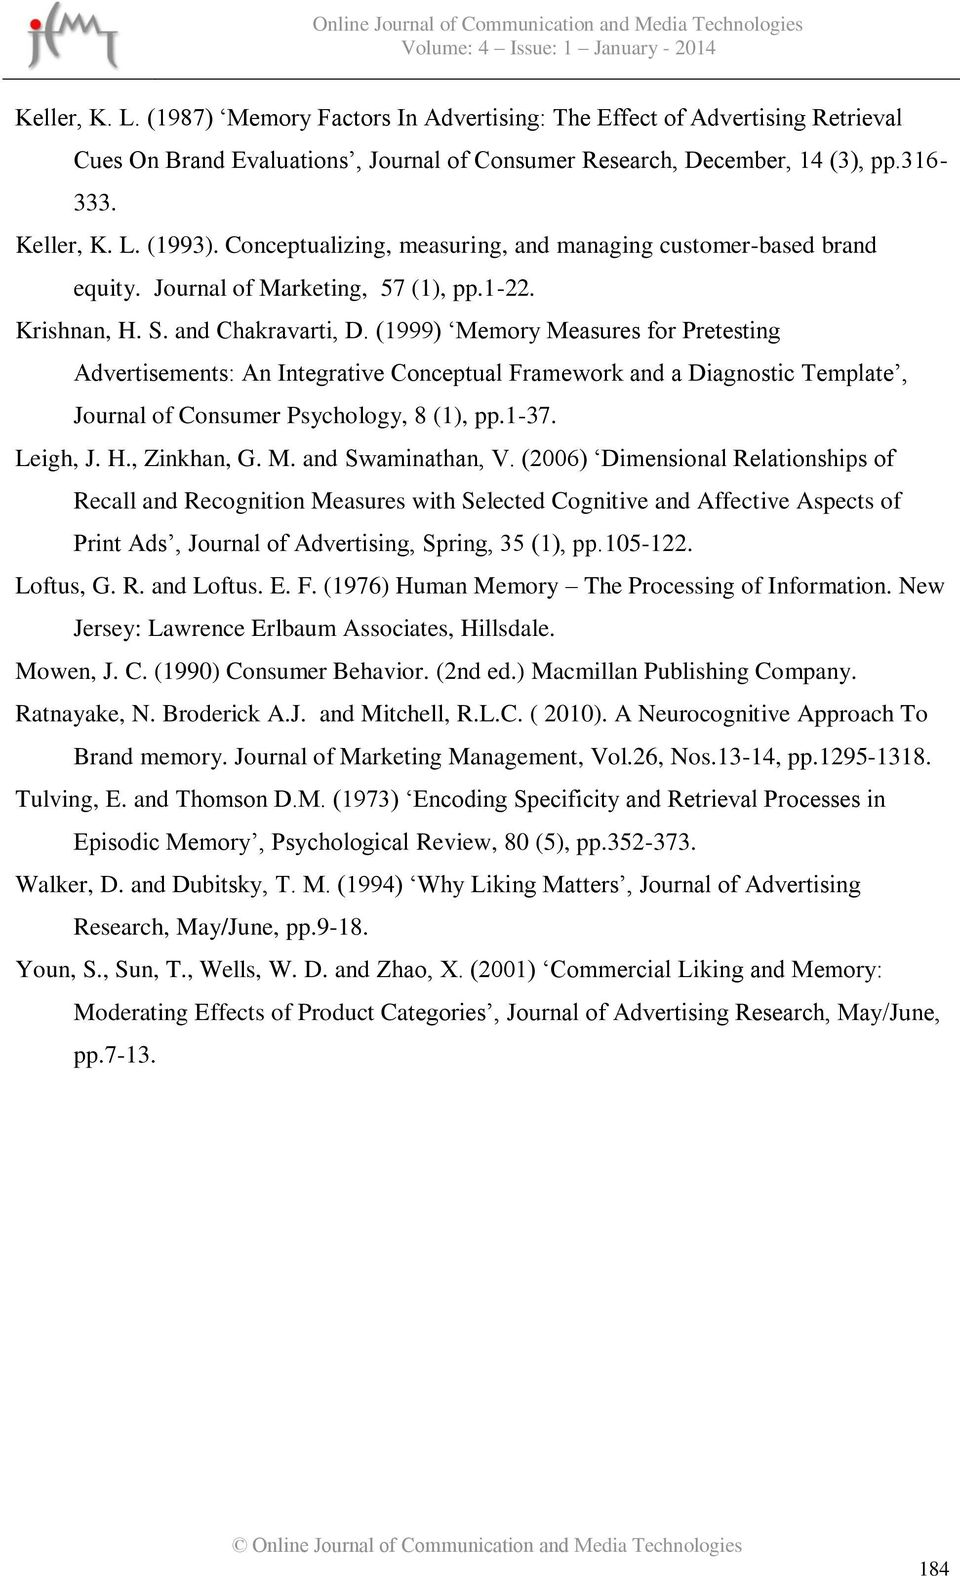 (1999) Memory Measures for Pretesting Advertisements: An Integrative Conceptual Framework and a Diagnostic Template, Journal of Consumer Psychology, 8 (1), pp.1-37. Leigh, J. H., Zinkhan, G. M. and Swaminathan, V.